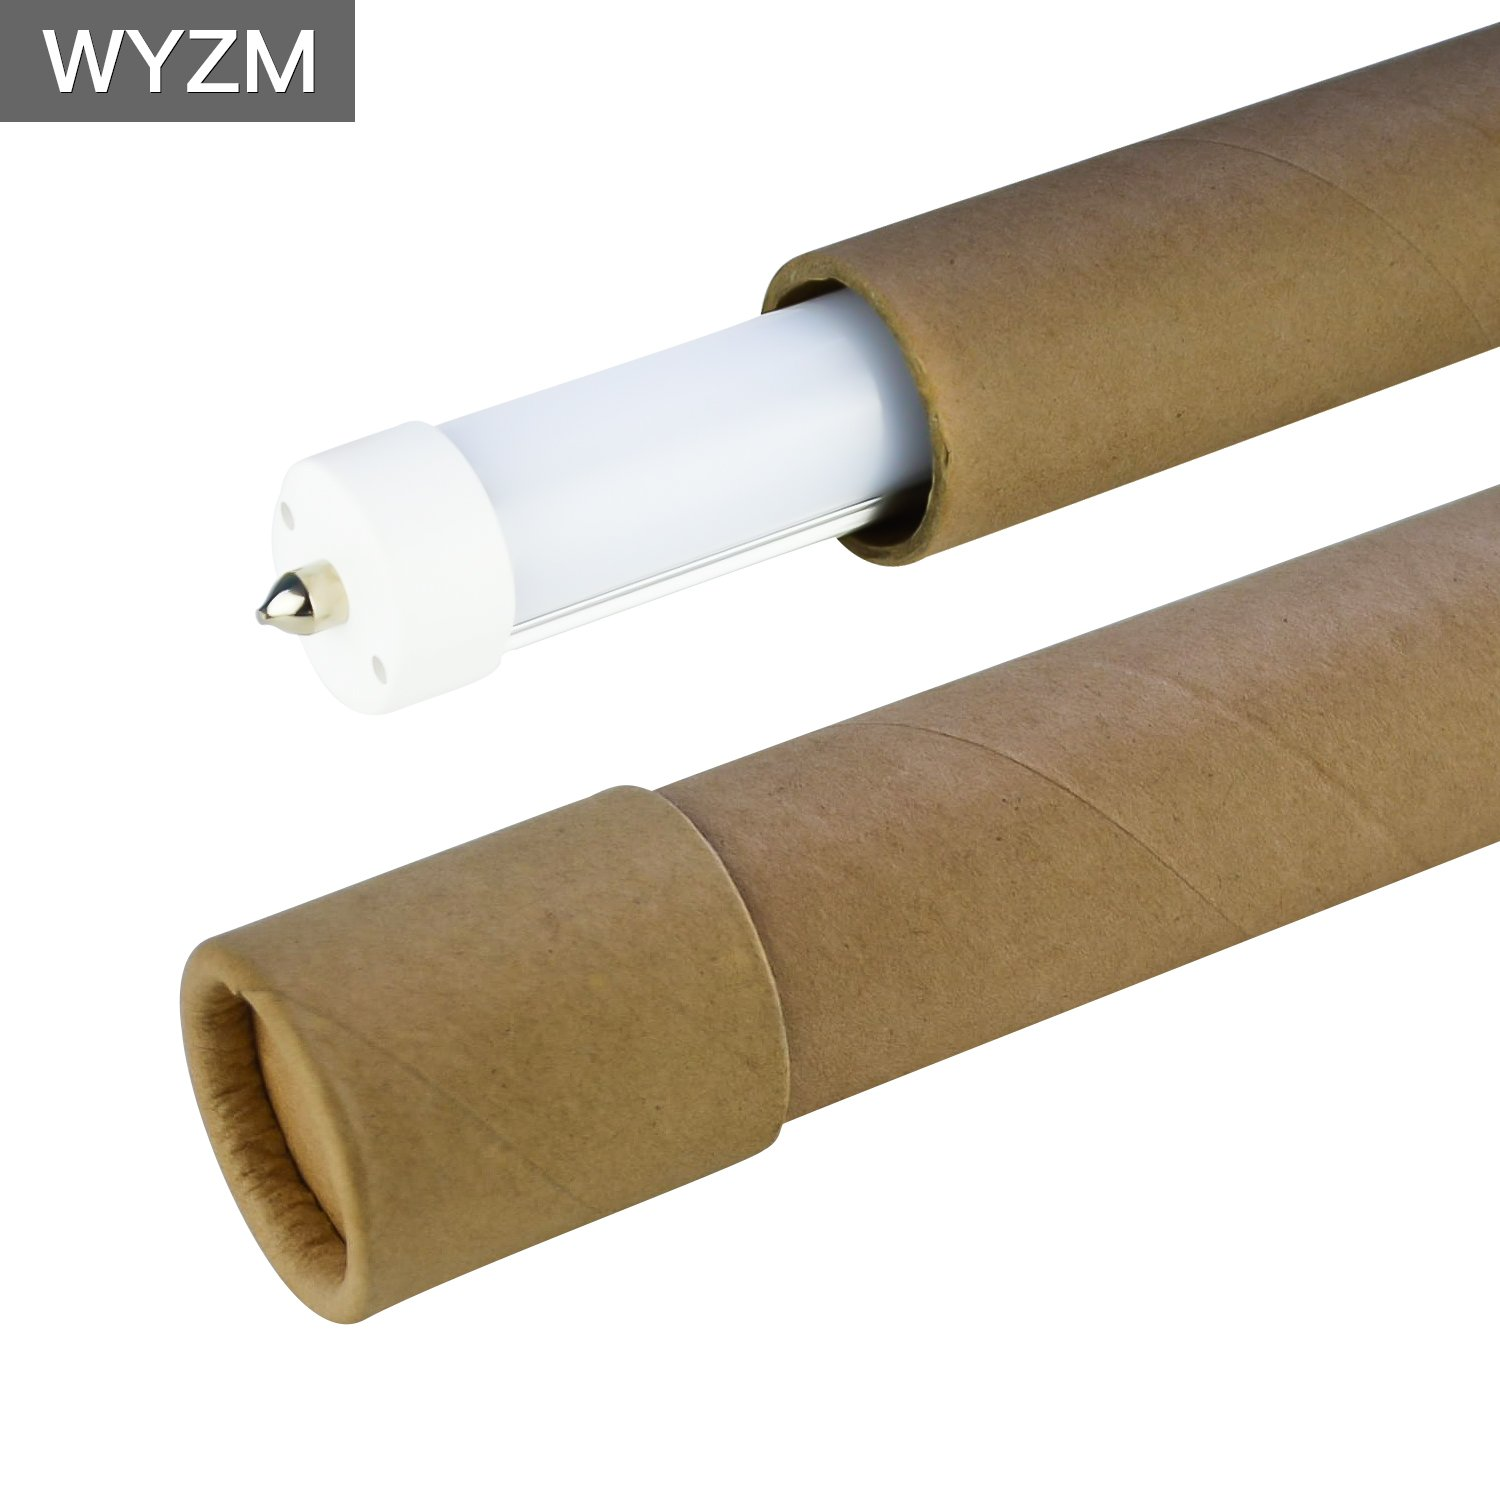 8ft LED Light Tubes for Fluorescent Fixtures,96'' F96T12 LED Tube,Replacement,120V and 277V Input, 5500K Daylight White,40Watt 4000LM Super Bright (4PCS 5500K Daylight White) by WYZM (Image #6)